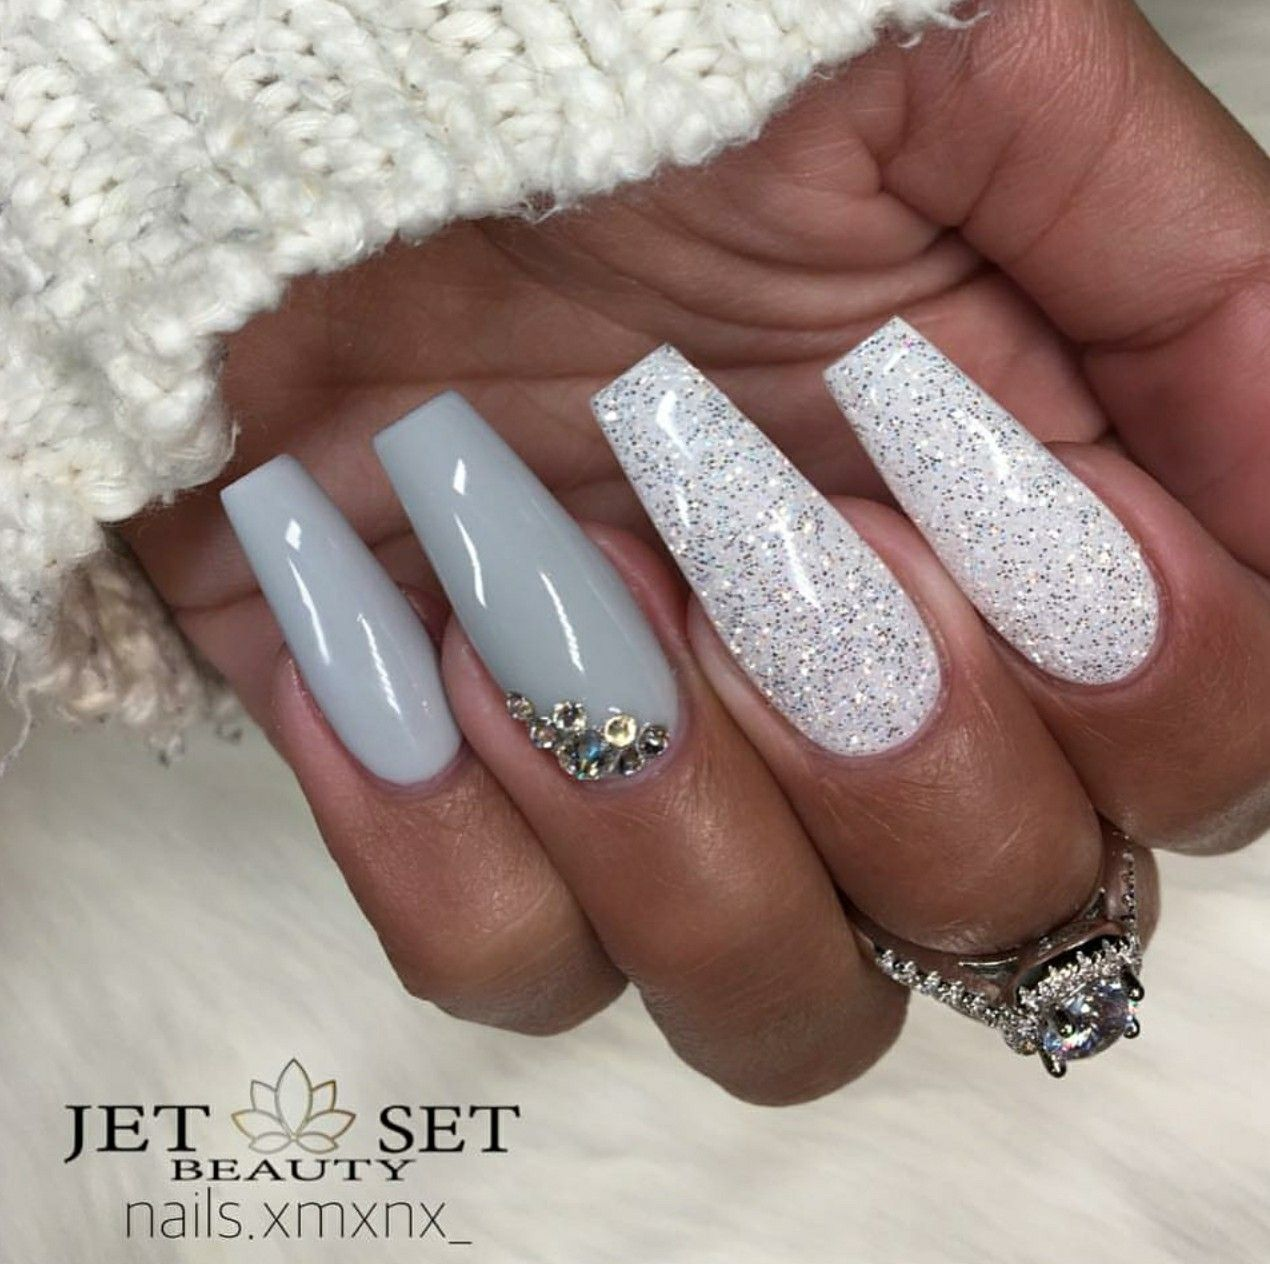 Ballerina Nails Gray And White Glitter With Rhinestones Acrylic Gel